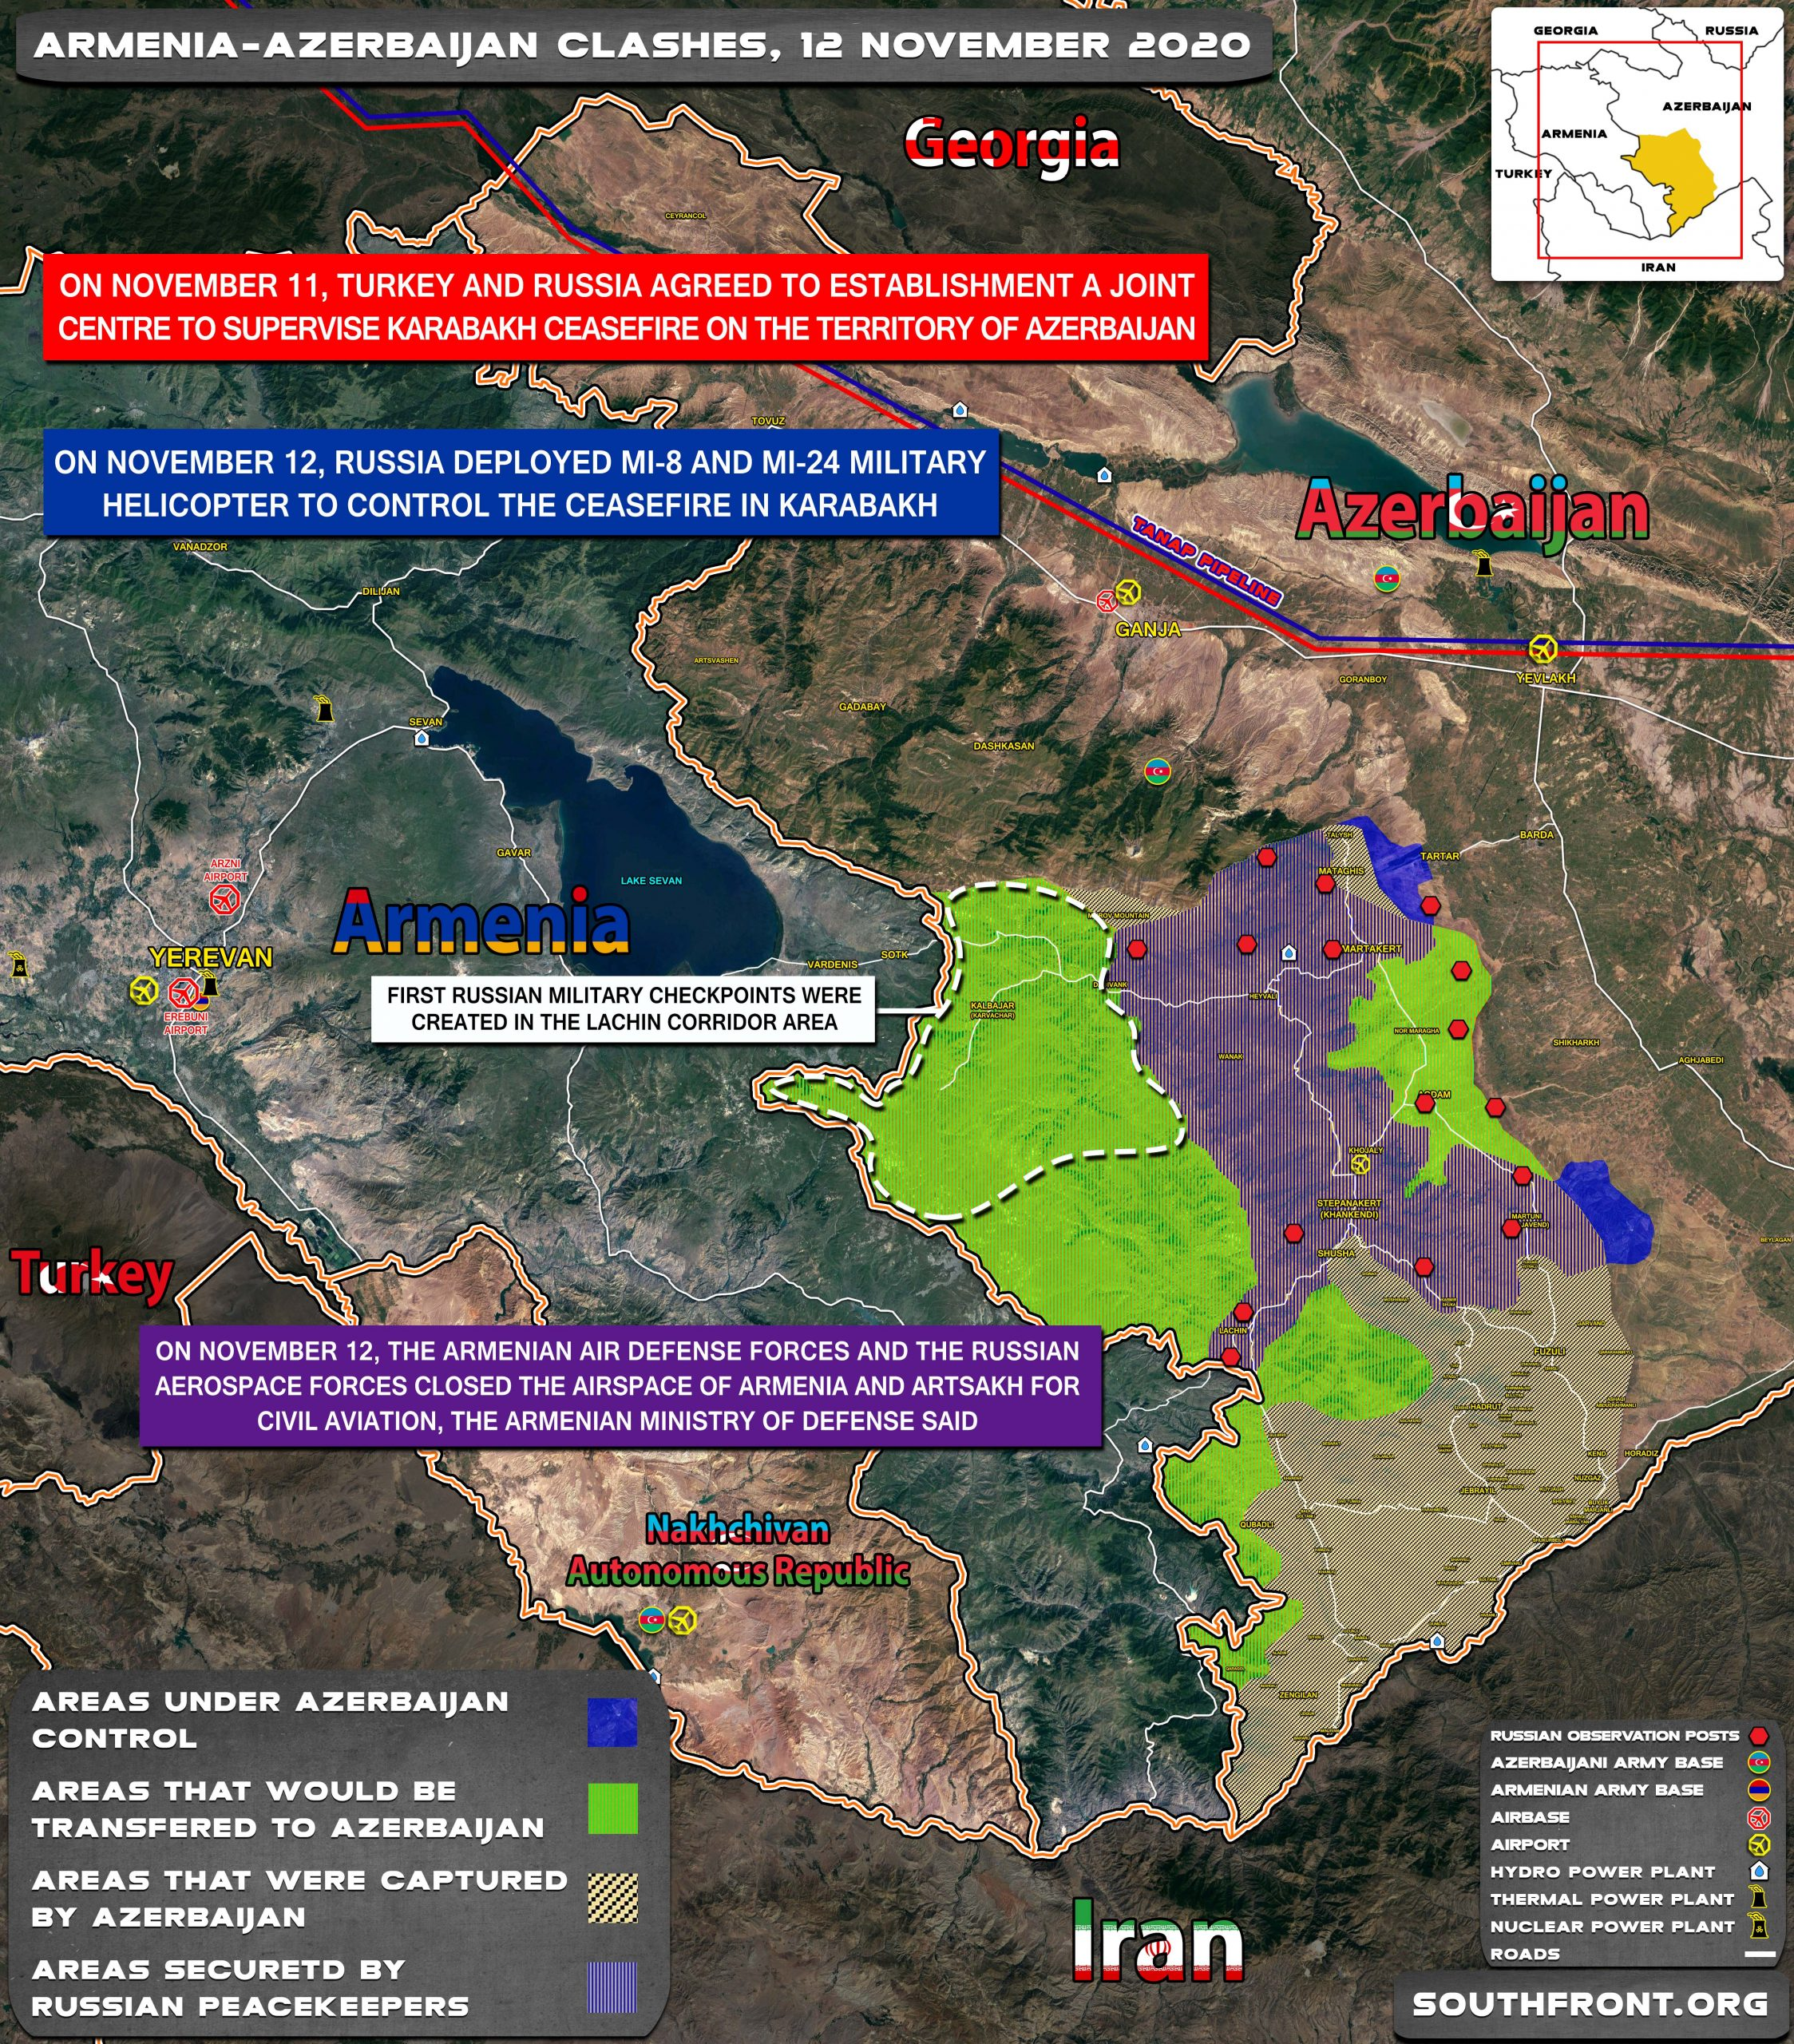 What We Know About Russia's Peacekeeping Force In Nagorno-Karabakh